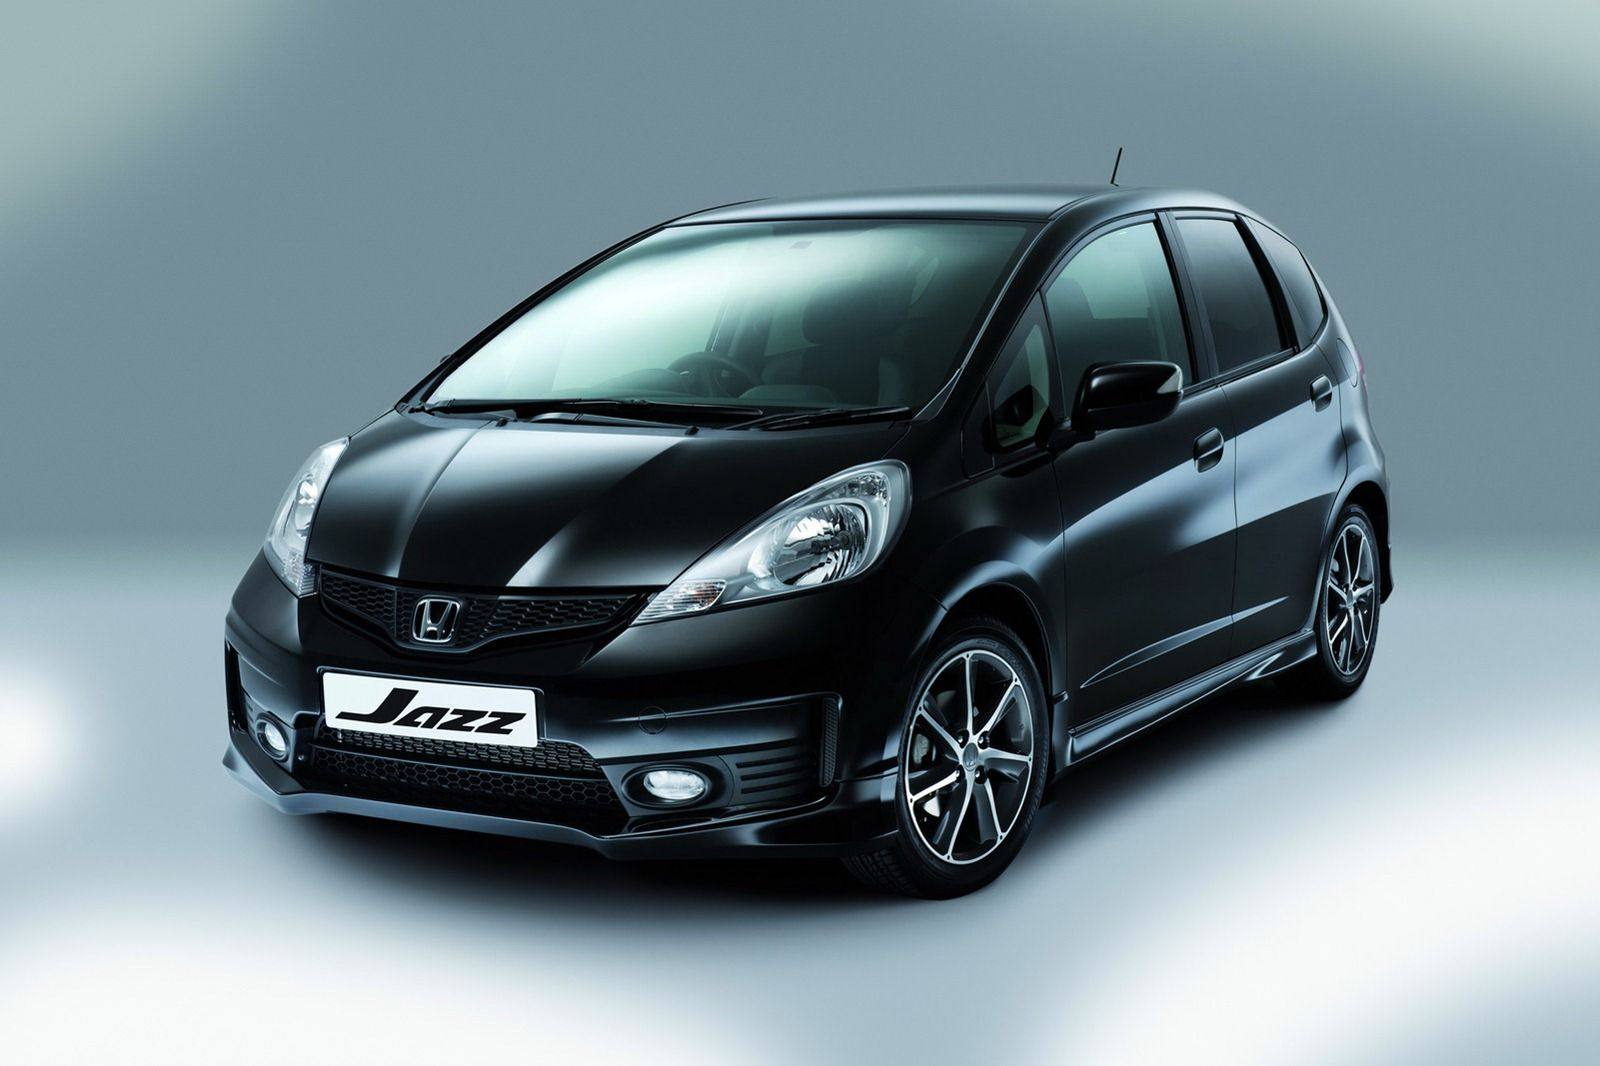 Honda jazz si in black color automotive pictures wallpapers